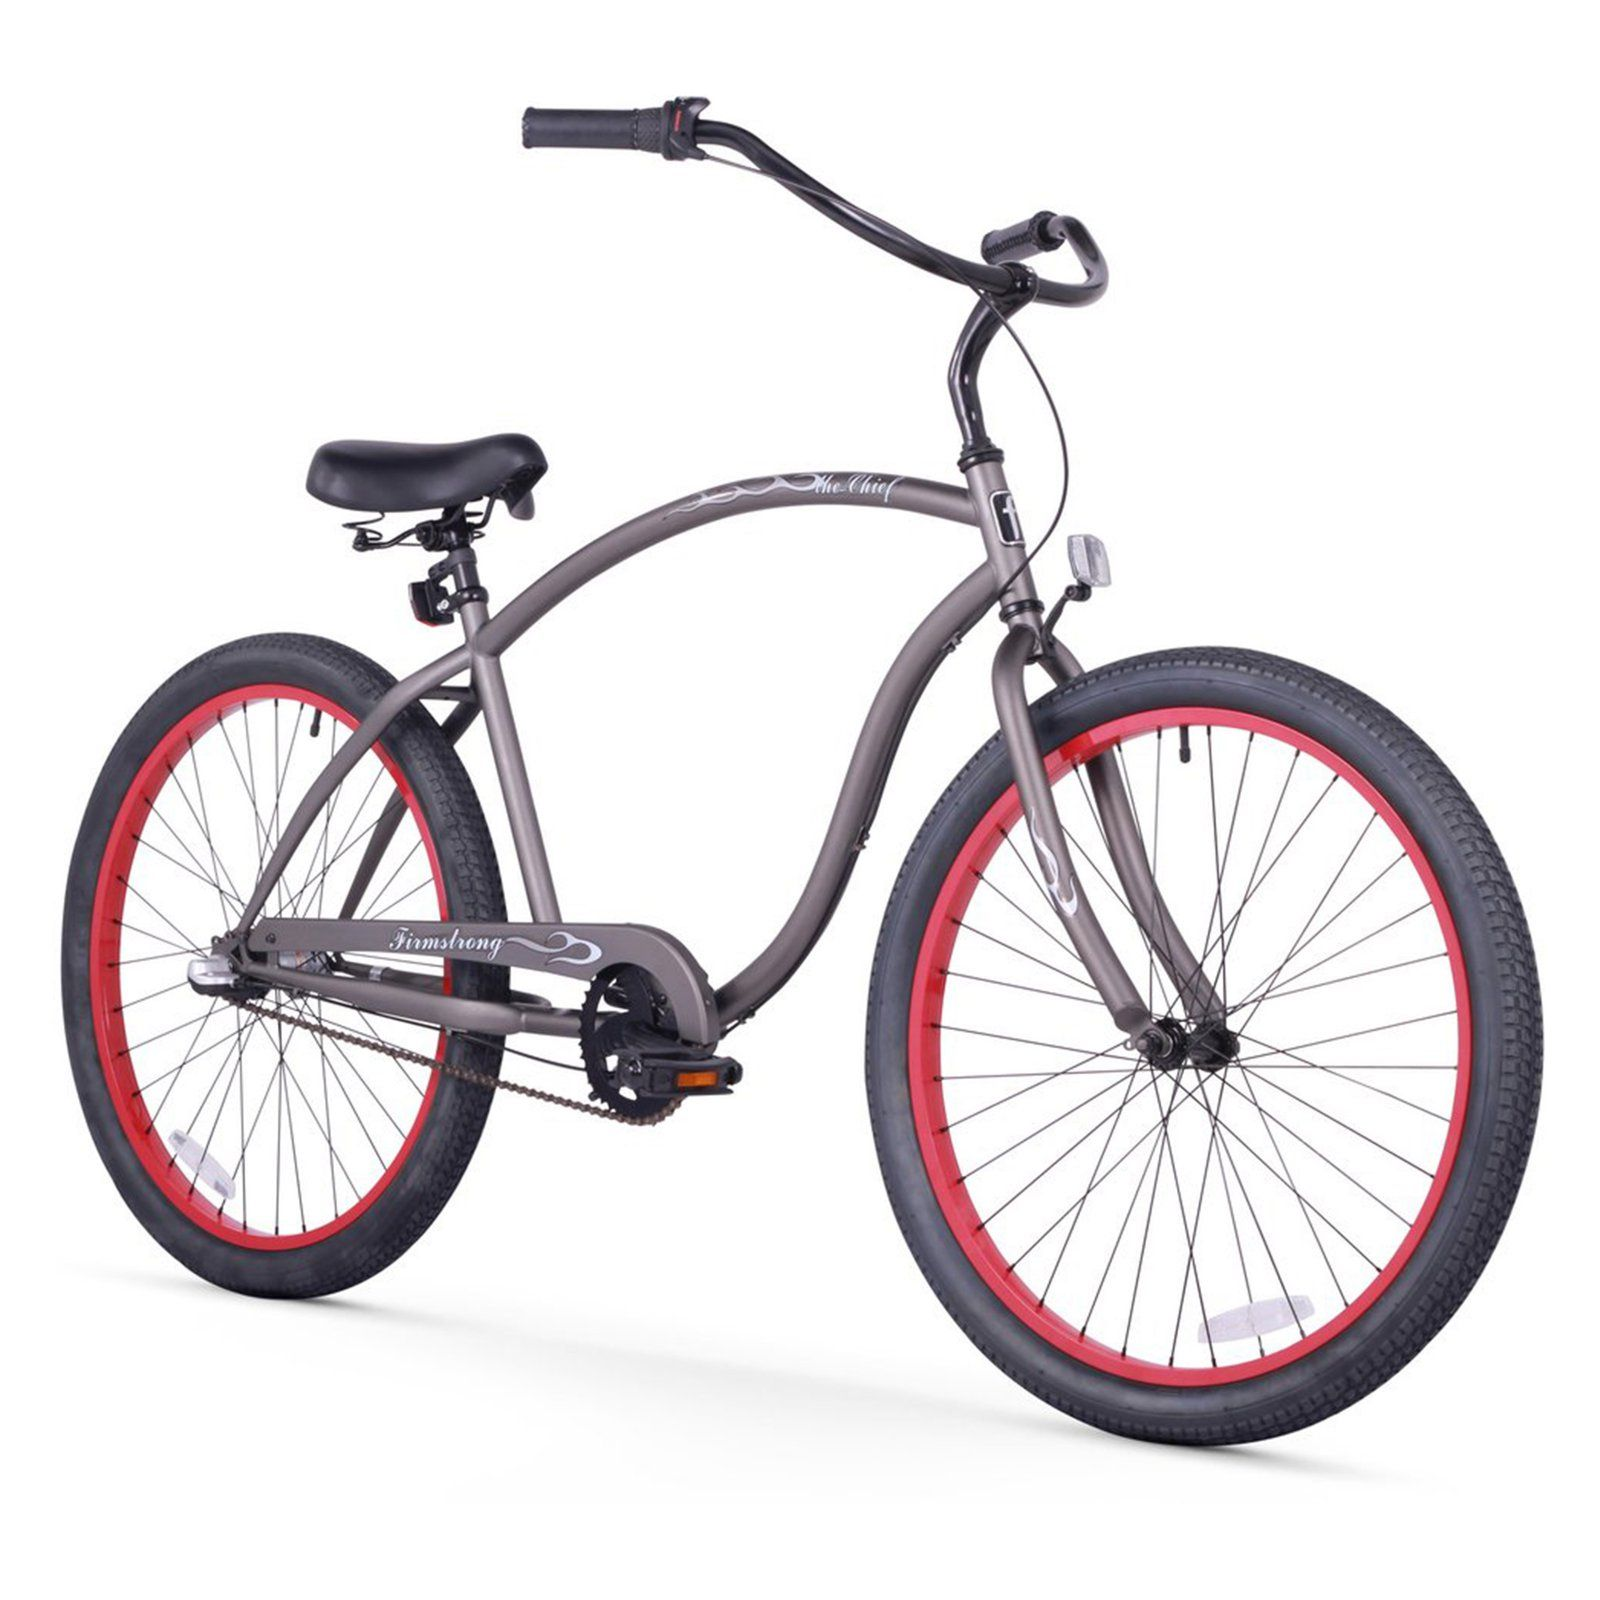 2400d846b1a Firmstrong Chief Man 26 in. 3 Speed Beach Cruiser Bicycle Matte Grey / Red  Rims